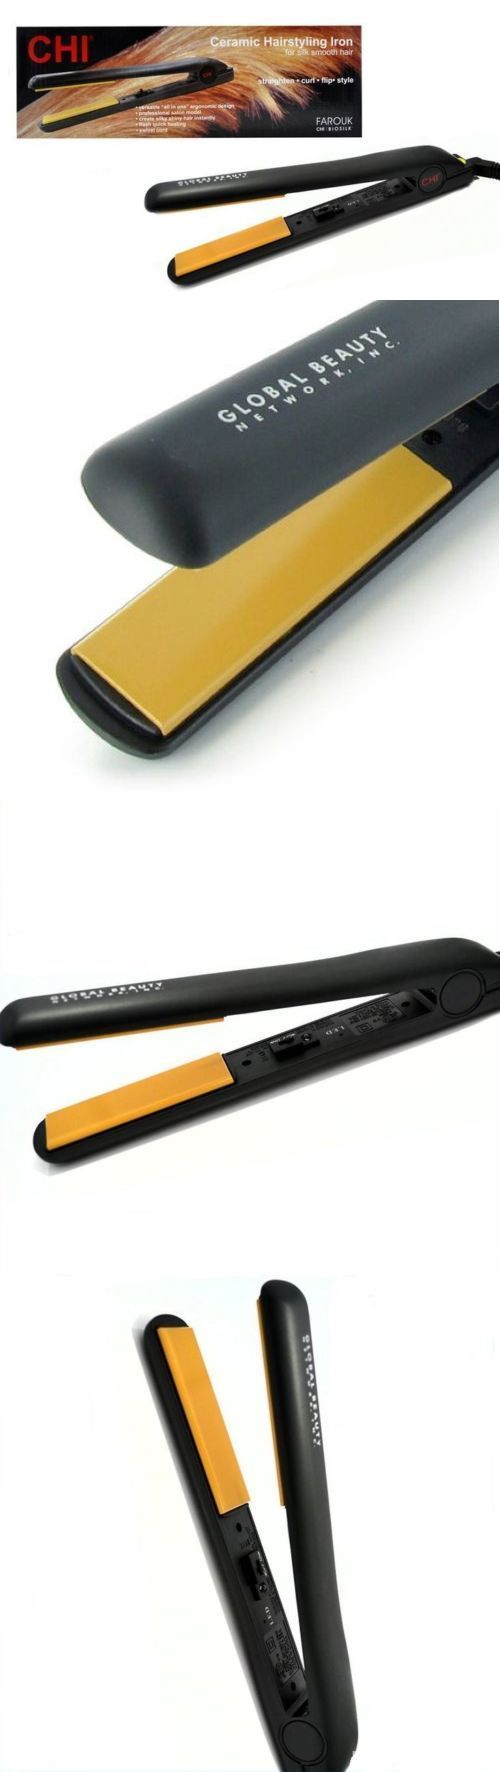 Straightening and Curling Irons: New Chi Pro 1 Ceramic Flat Iron Hair Straightener Hairstyling Professional Iron -> BUY IT NOW ONLY: $34.95 on eBay!